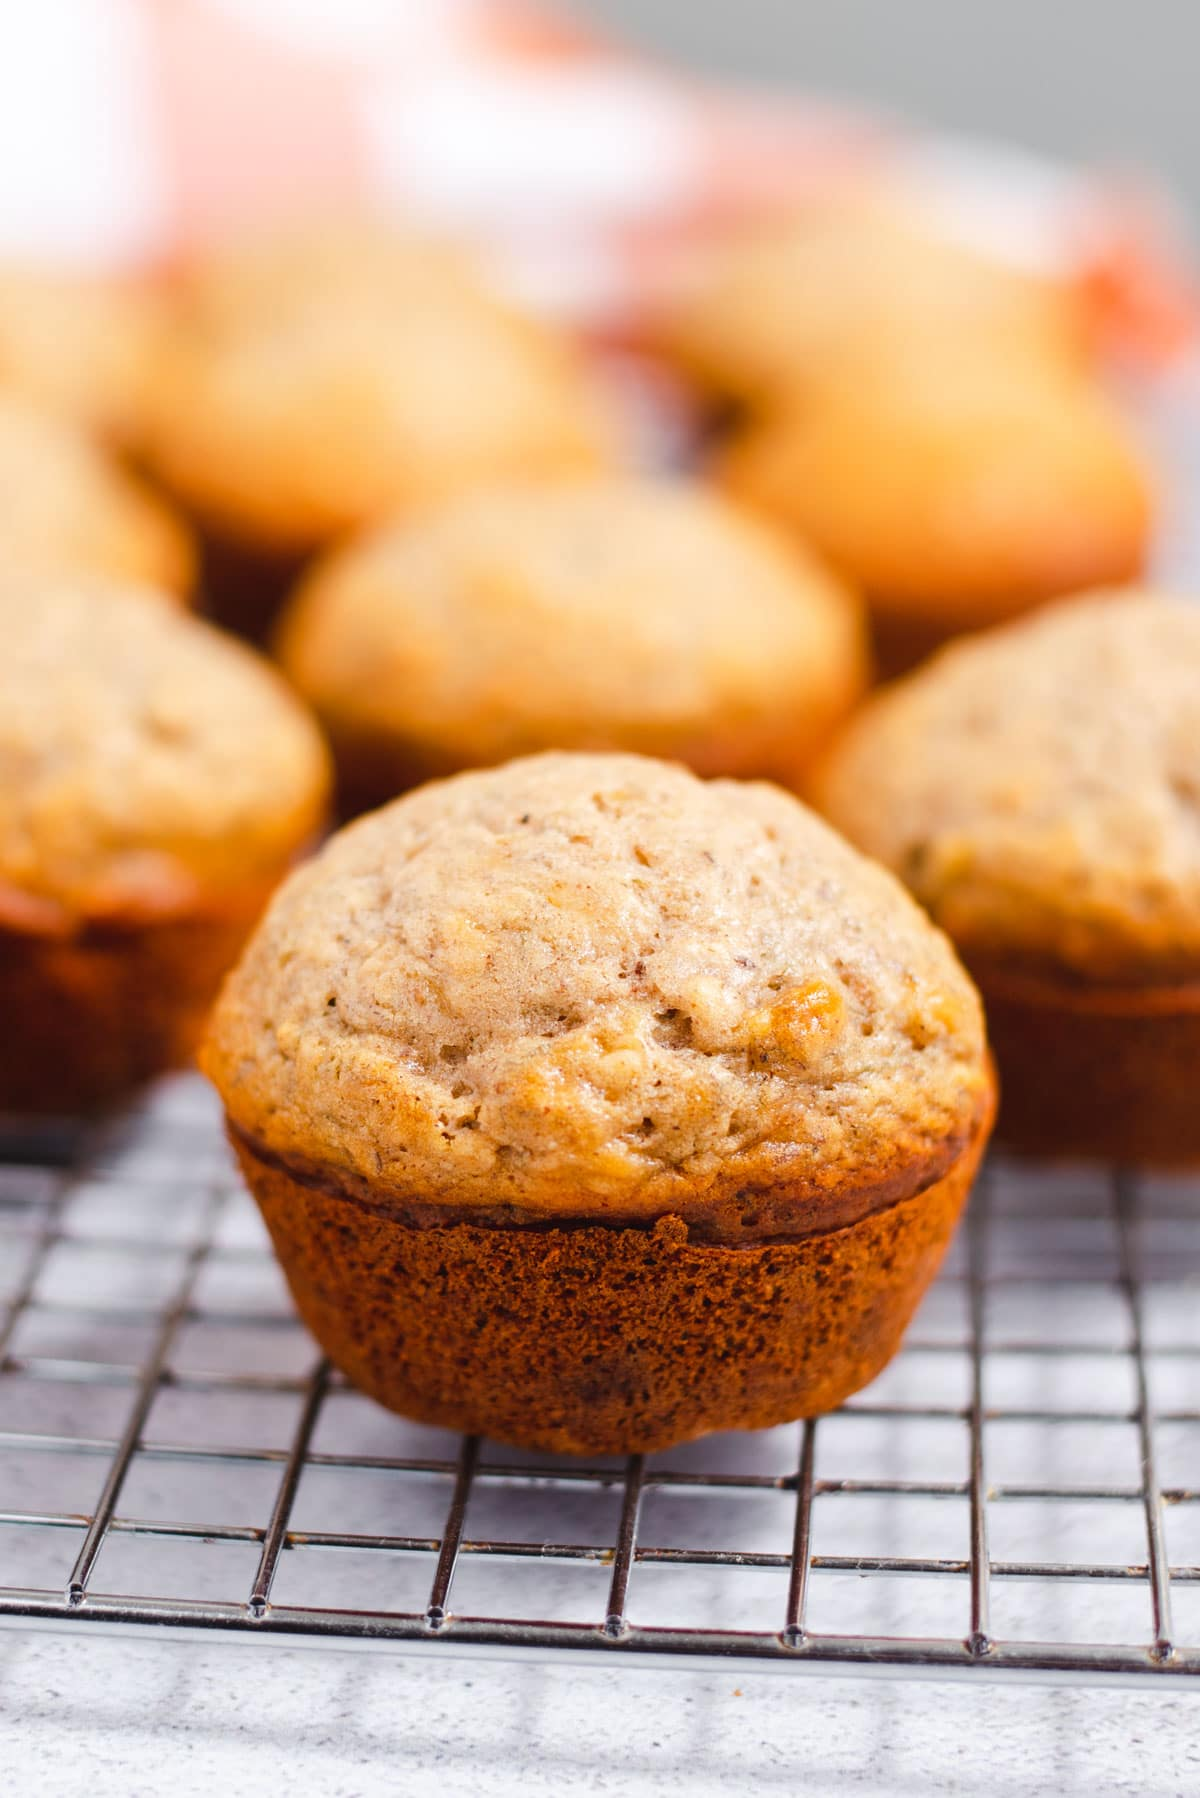 Banana muffin on a wire cooling rack